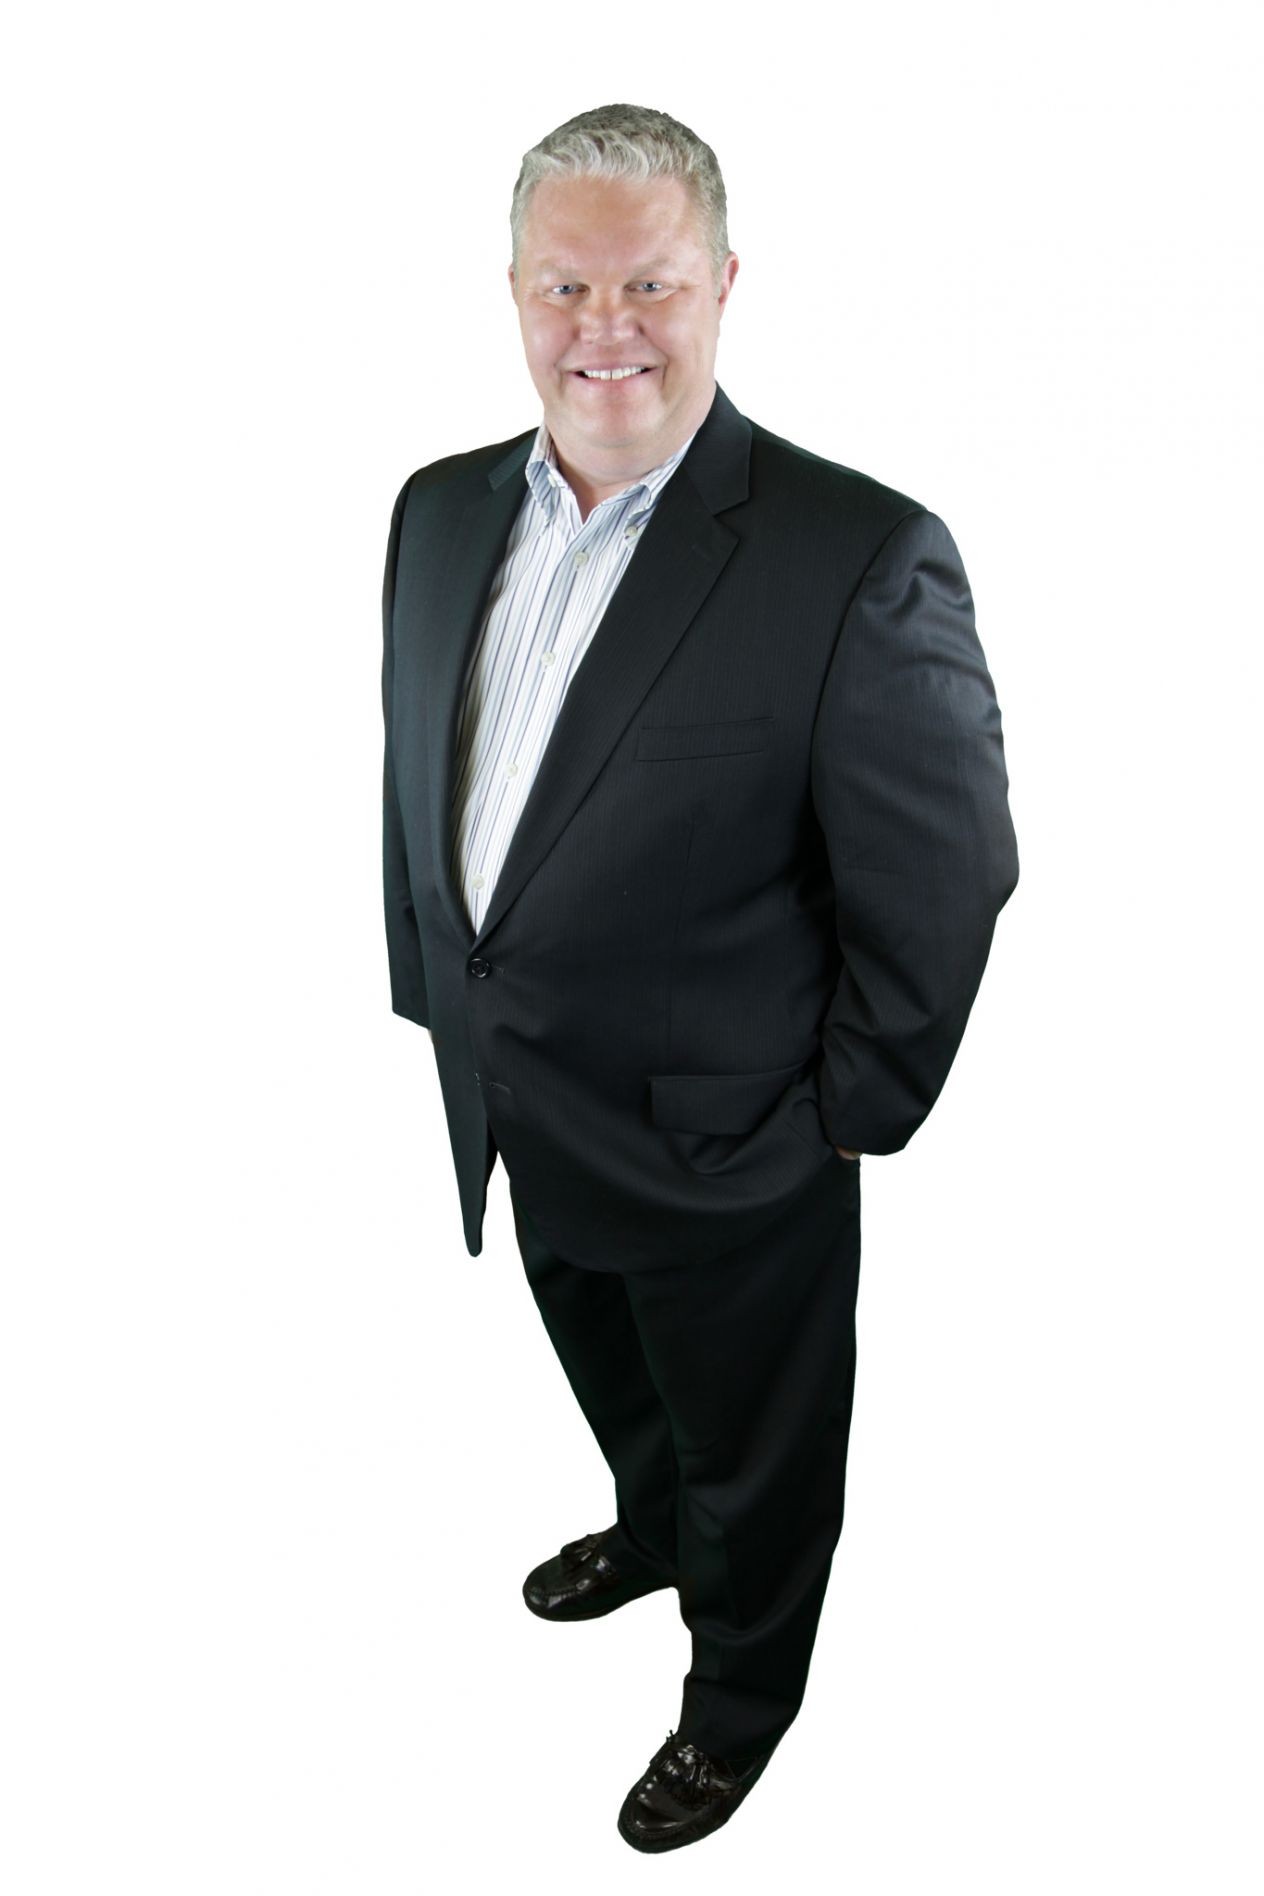 David Lorms, Award Winning Insurance Agent and Best-Selling Author